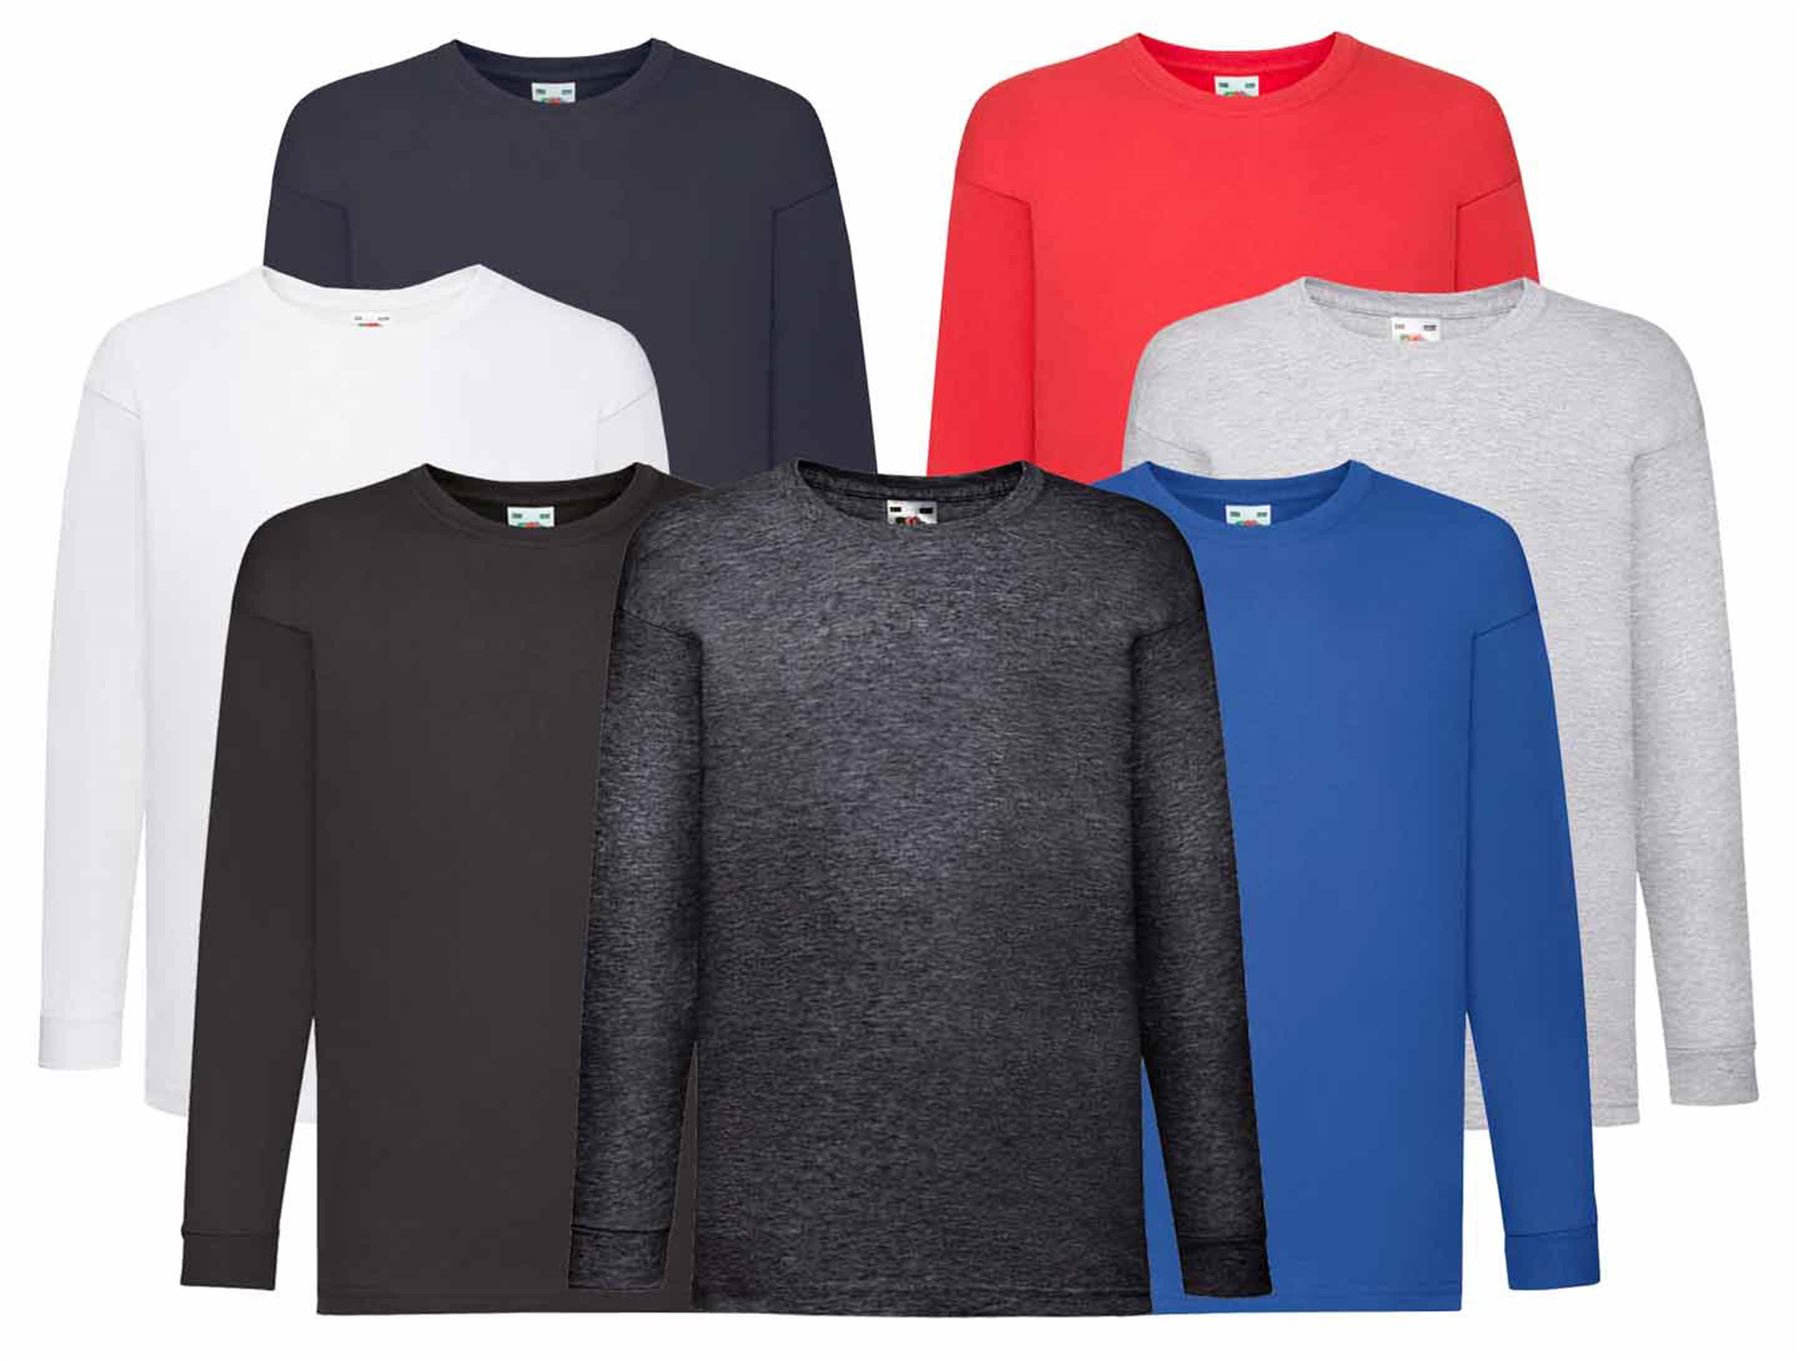 Kids Fruit of the Loom Long Sleeve Cotton t-shirt-Chidrens unisex top sizes 3-13